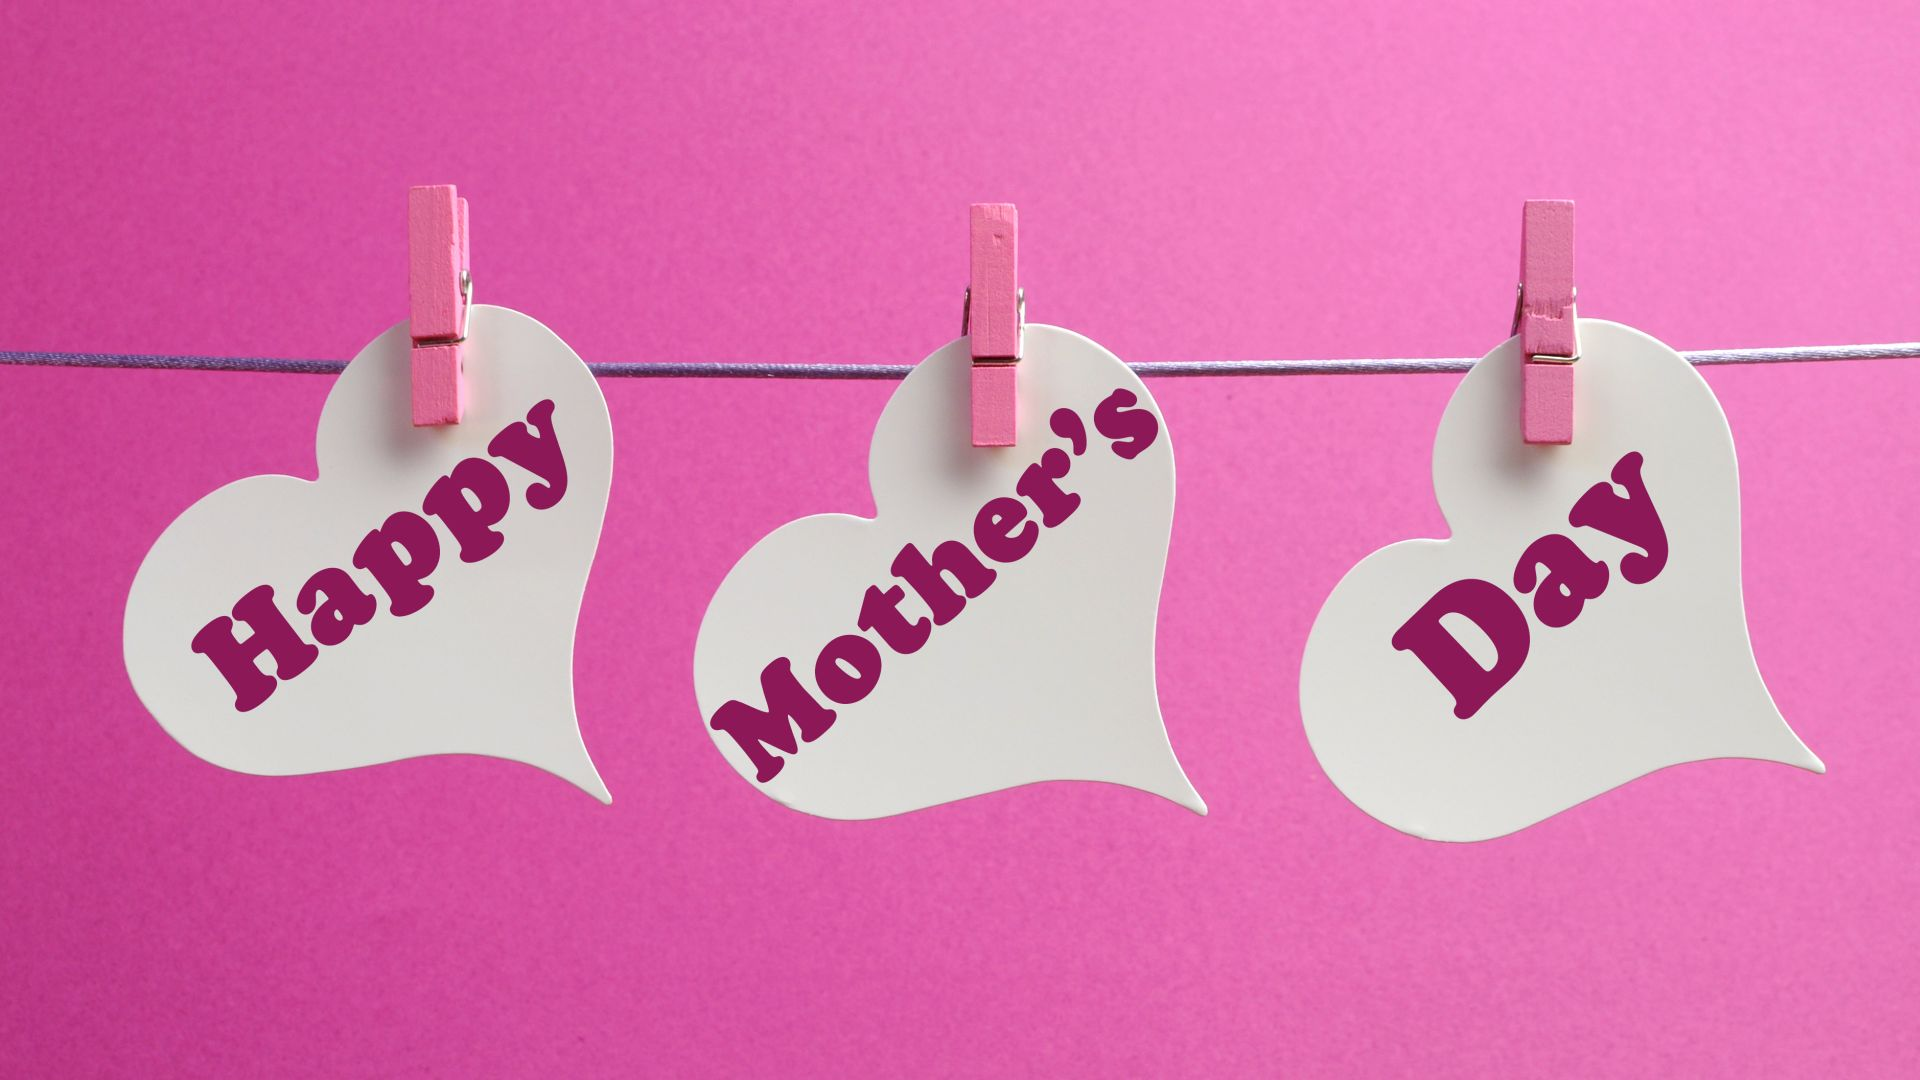 mothers day desktop wallpaper 61221